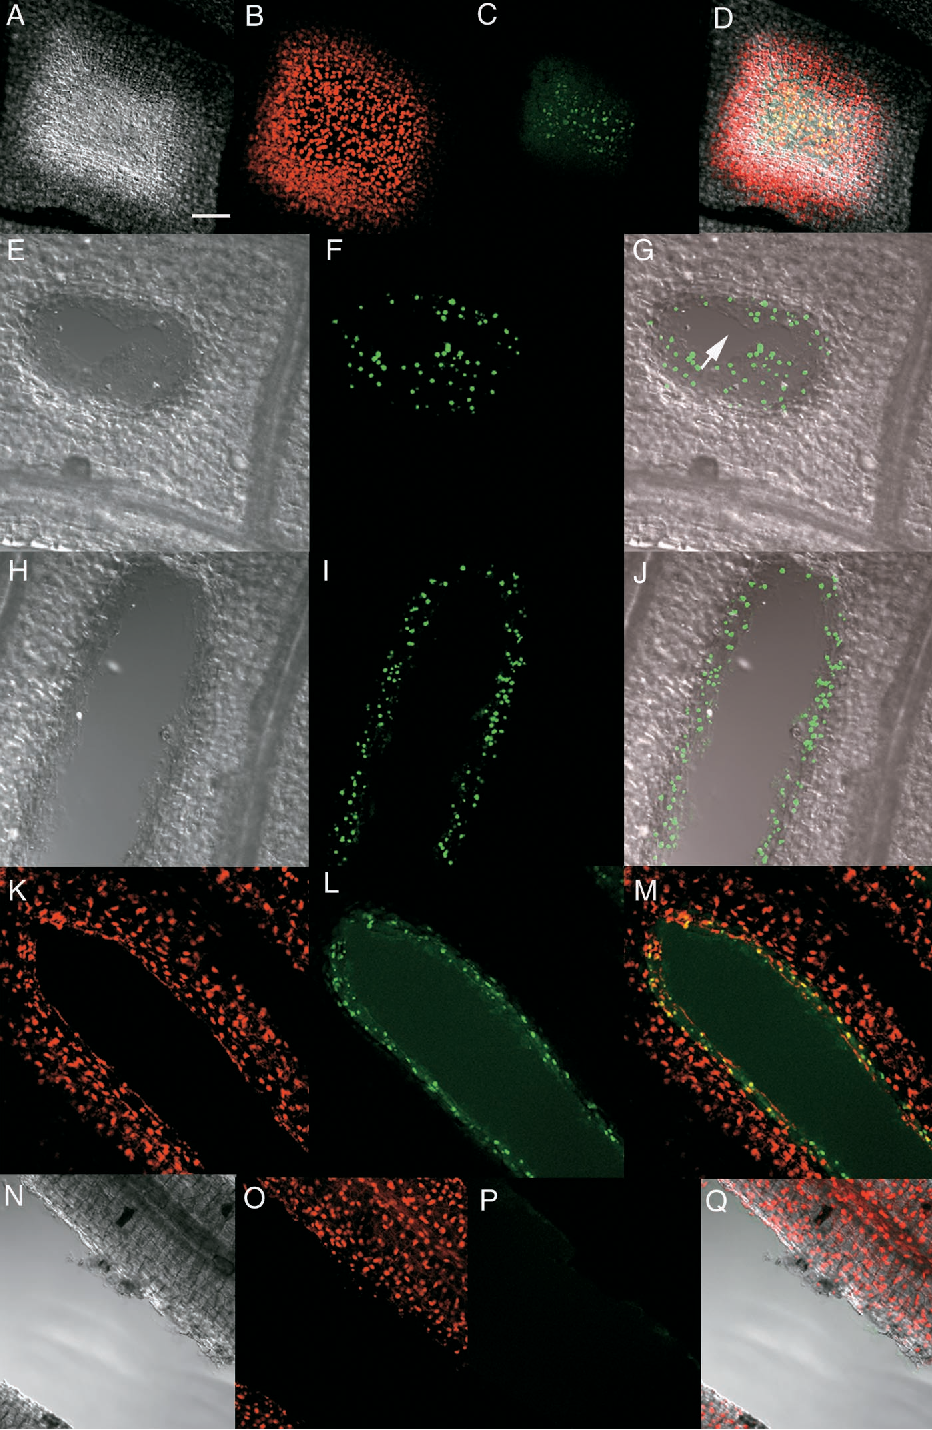 Figure 4. Confocal Microscopy and Differential Interference Contrast Microscopy Showing Detection of DNA Cleavage by TUNEL Assay.